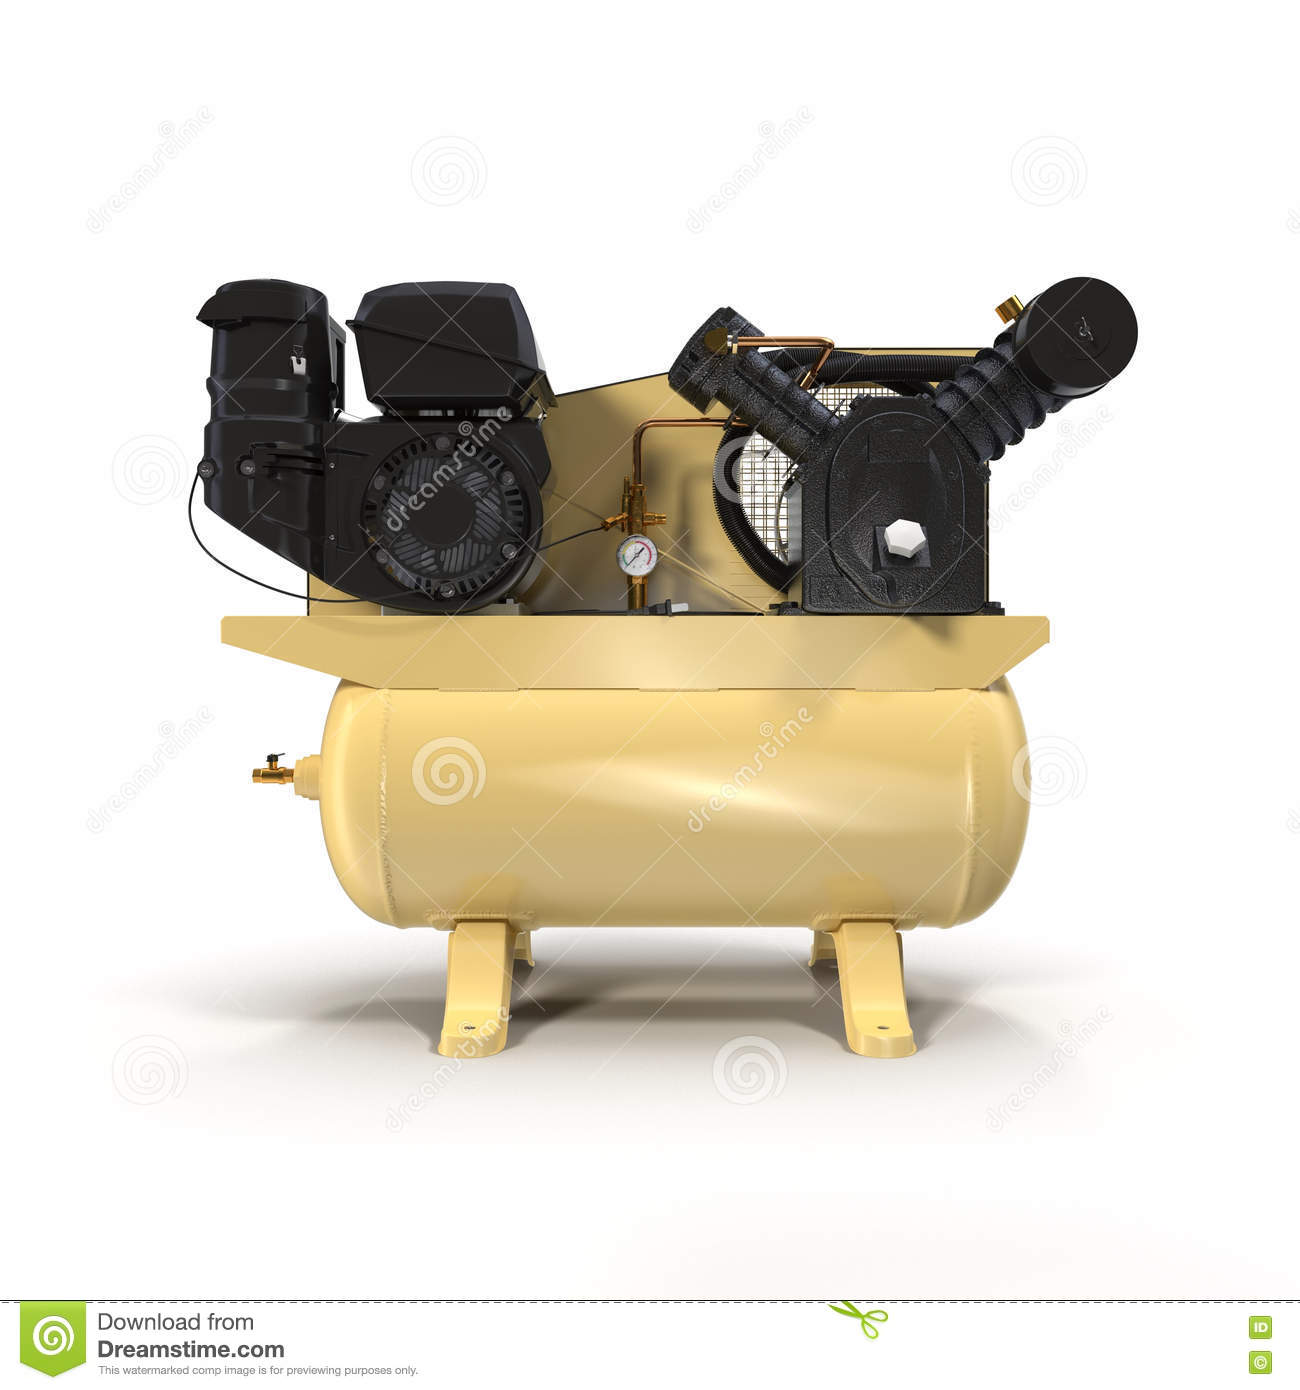 Piston Air Compressor On White 3D Illustration Stock Illustration